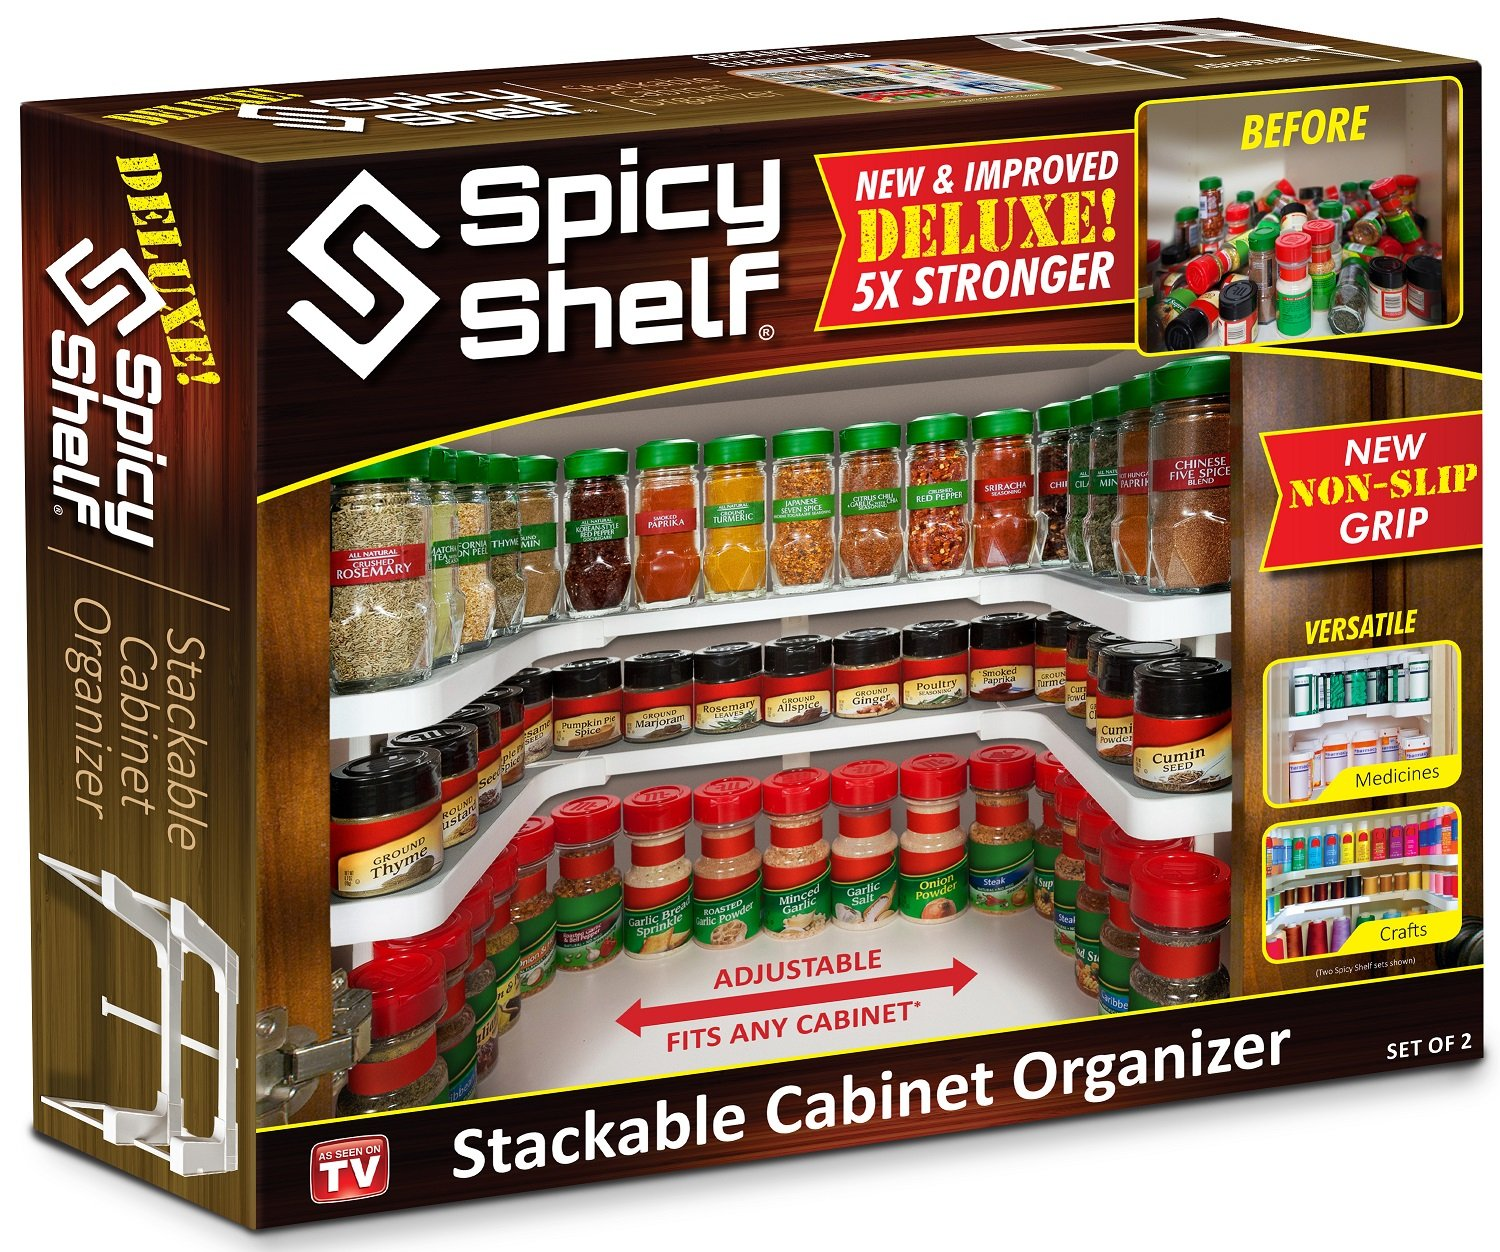 The ONLY REAL Spicy Shelf Deluxe (1 set of 2 shelves)